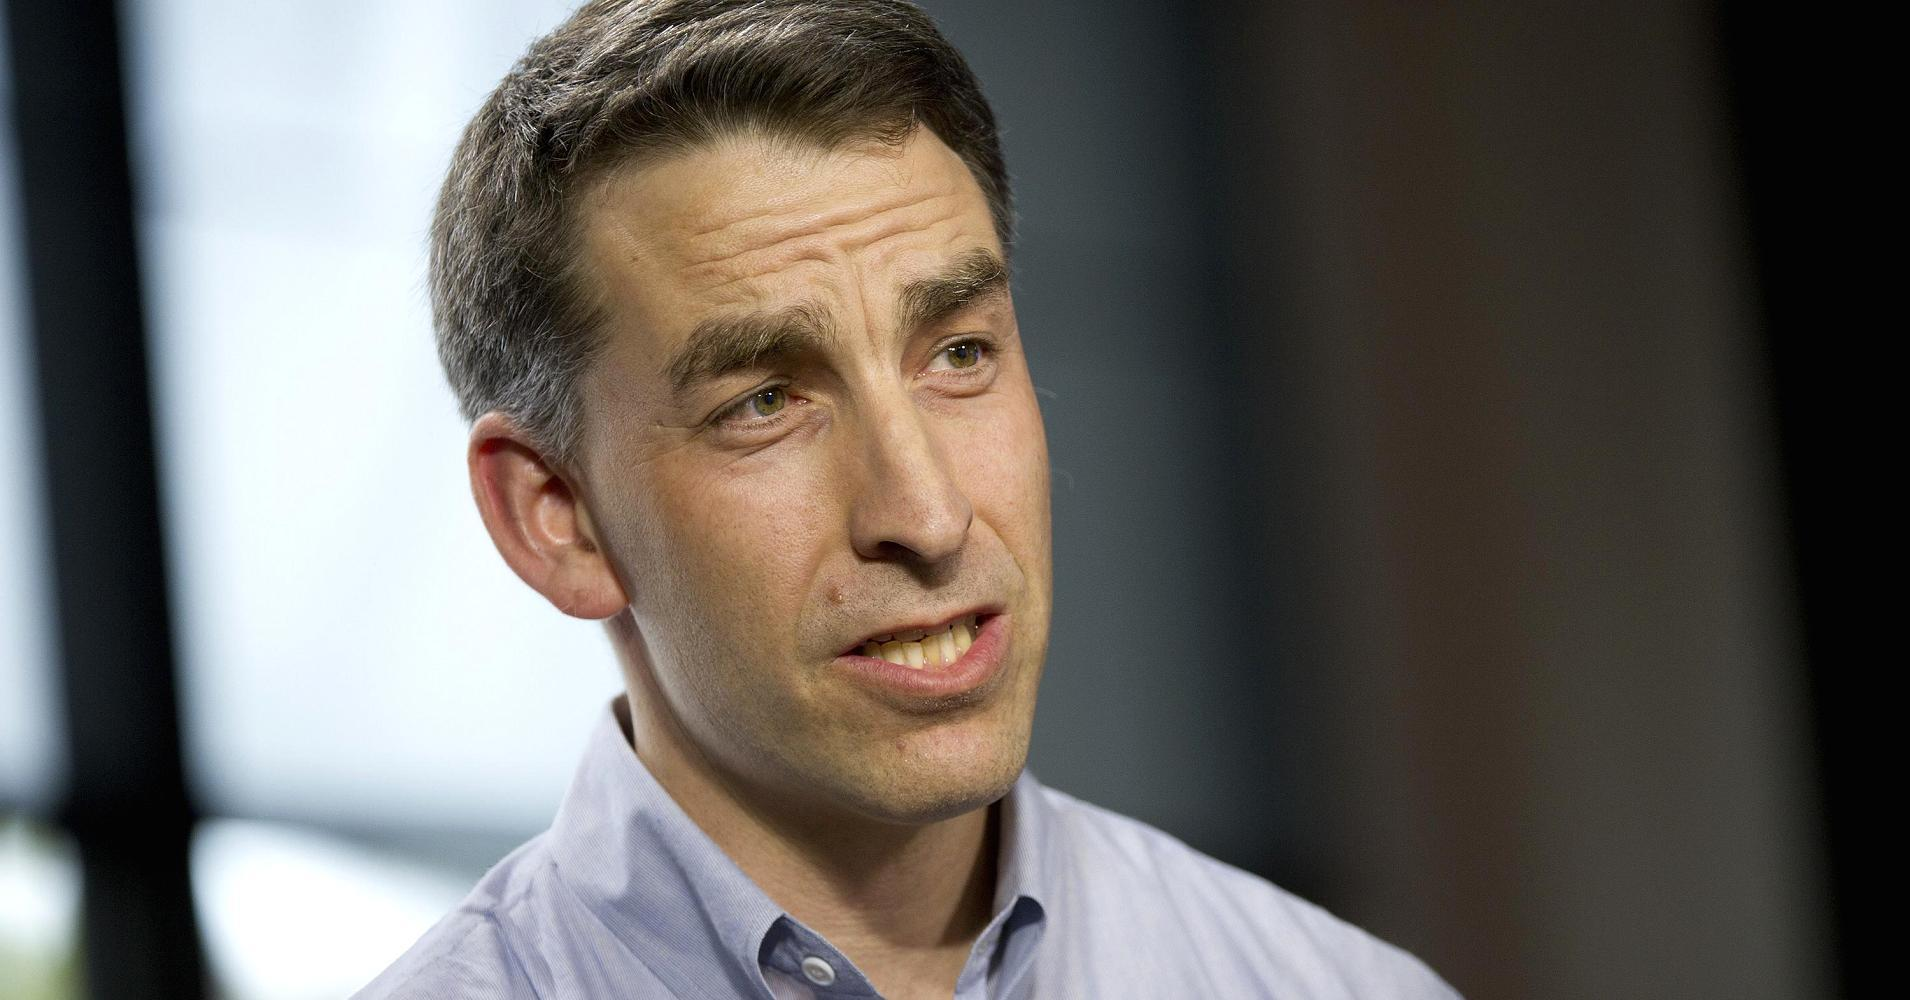 Housing hot, but expect pullback: Redfin CEO